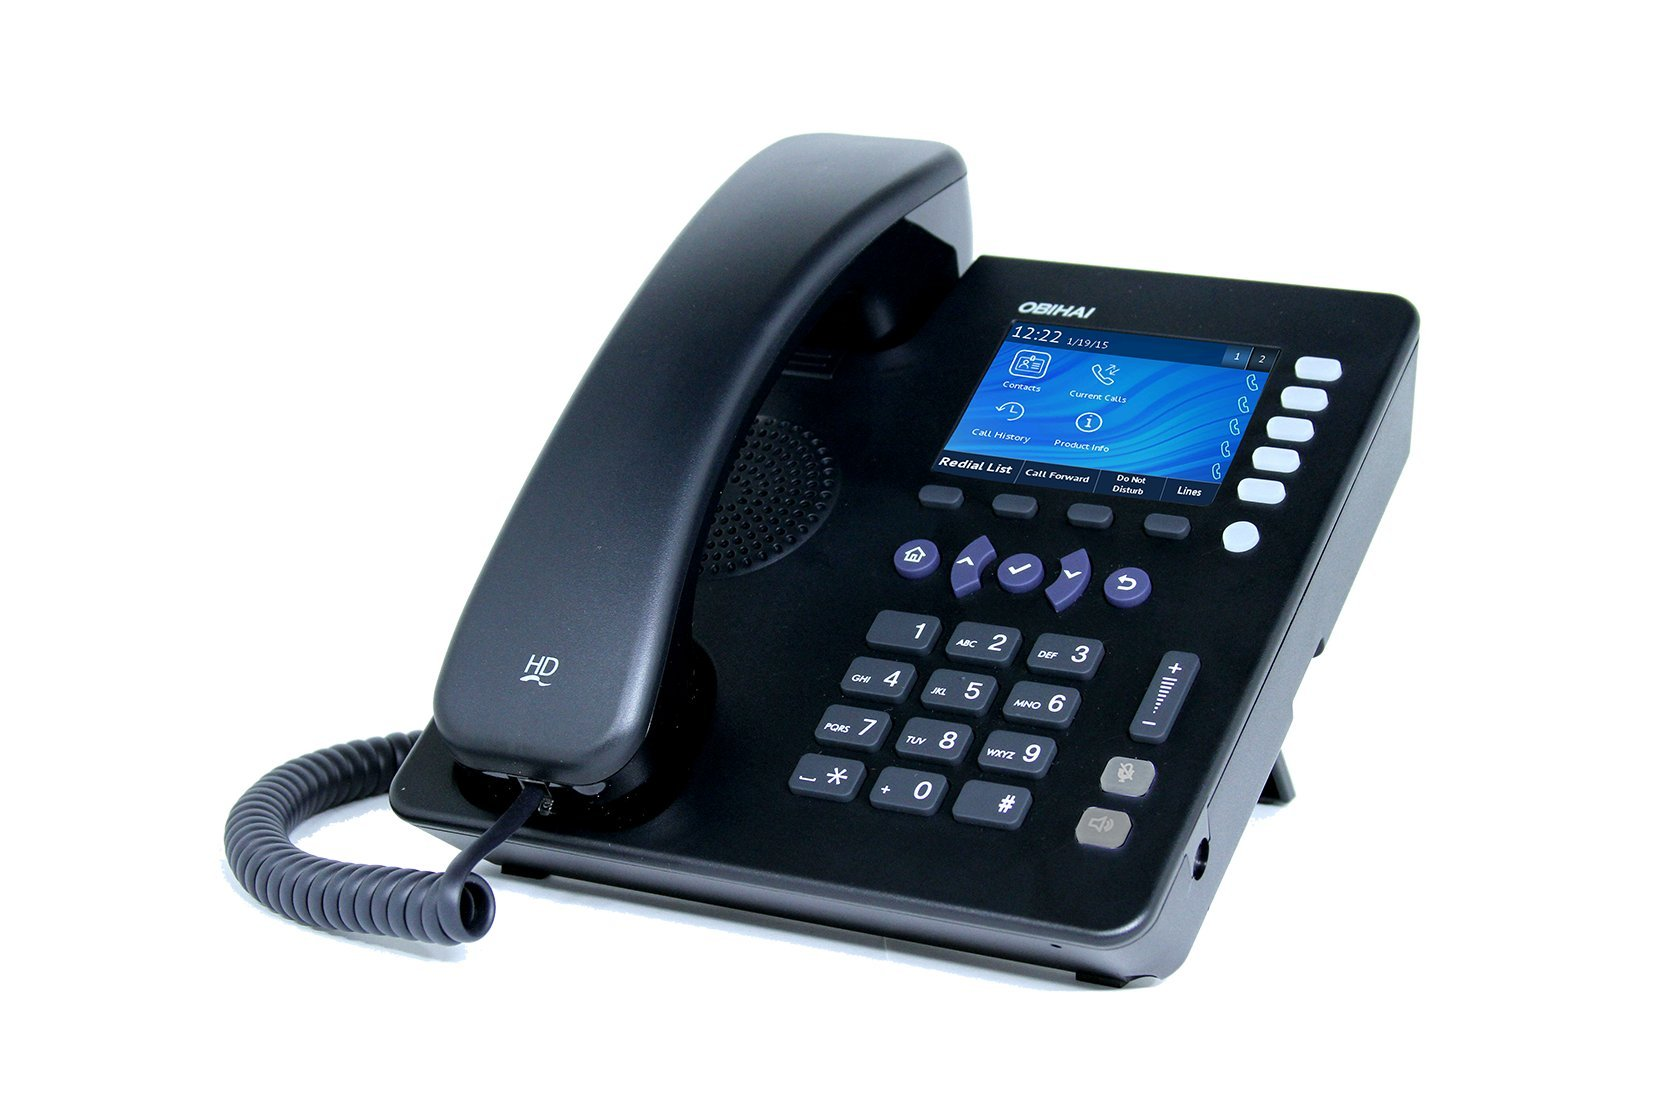 Obihai OBi1022 IP Phone with Power Supply - Up to 10 Lines - Support for Google Voice and SIP-Based Services by Obihai